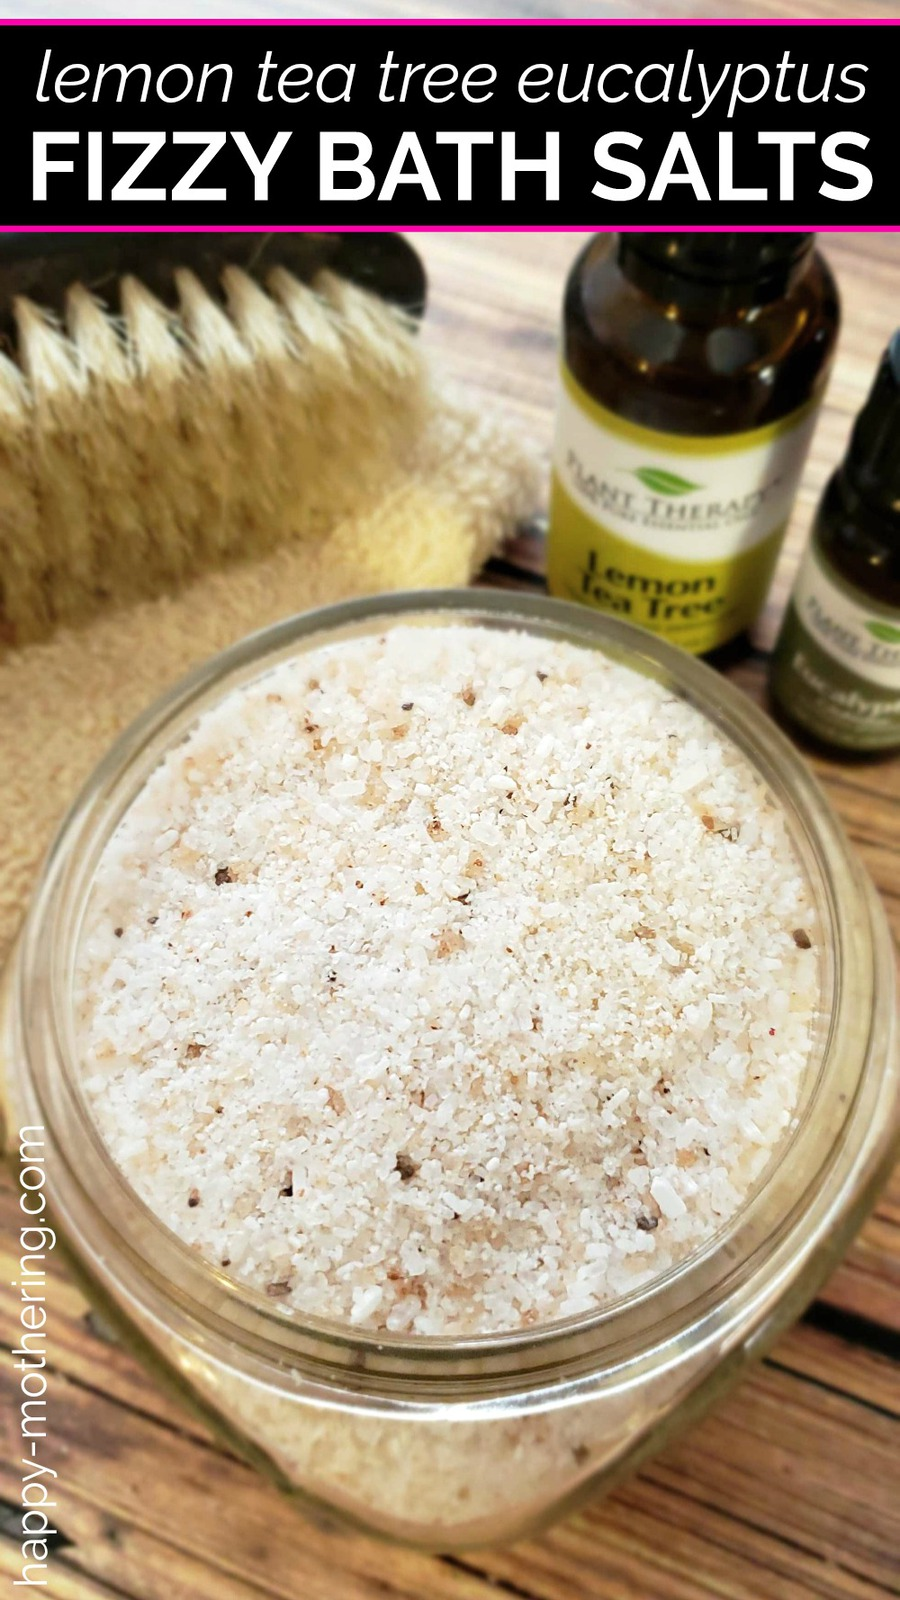 Fizzy bath salts are one of my new favorite homemade beauty products. They're so easy to make - you get the benefits of bath bombs without all the effort! This Lemon Tea Tree Eucalyptus scent is perfect for winter months and seasonal allergies.